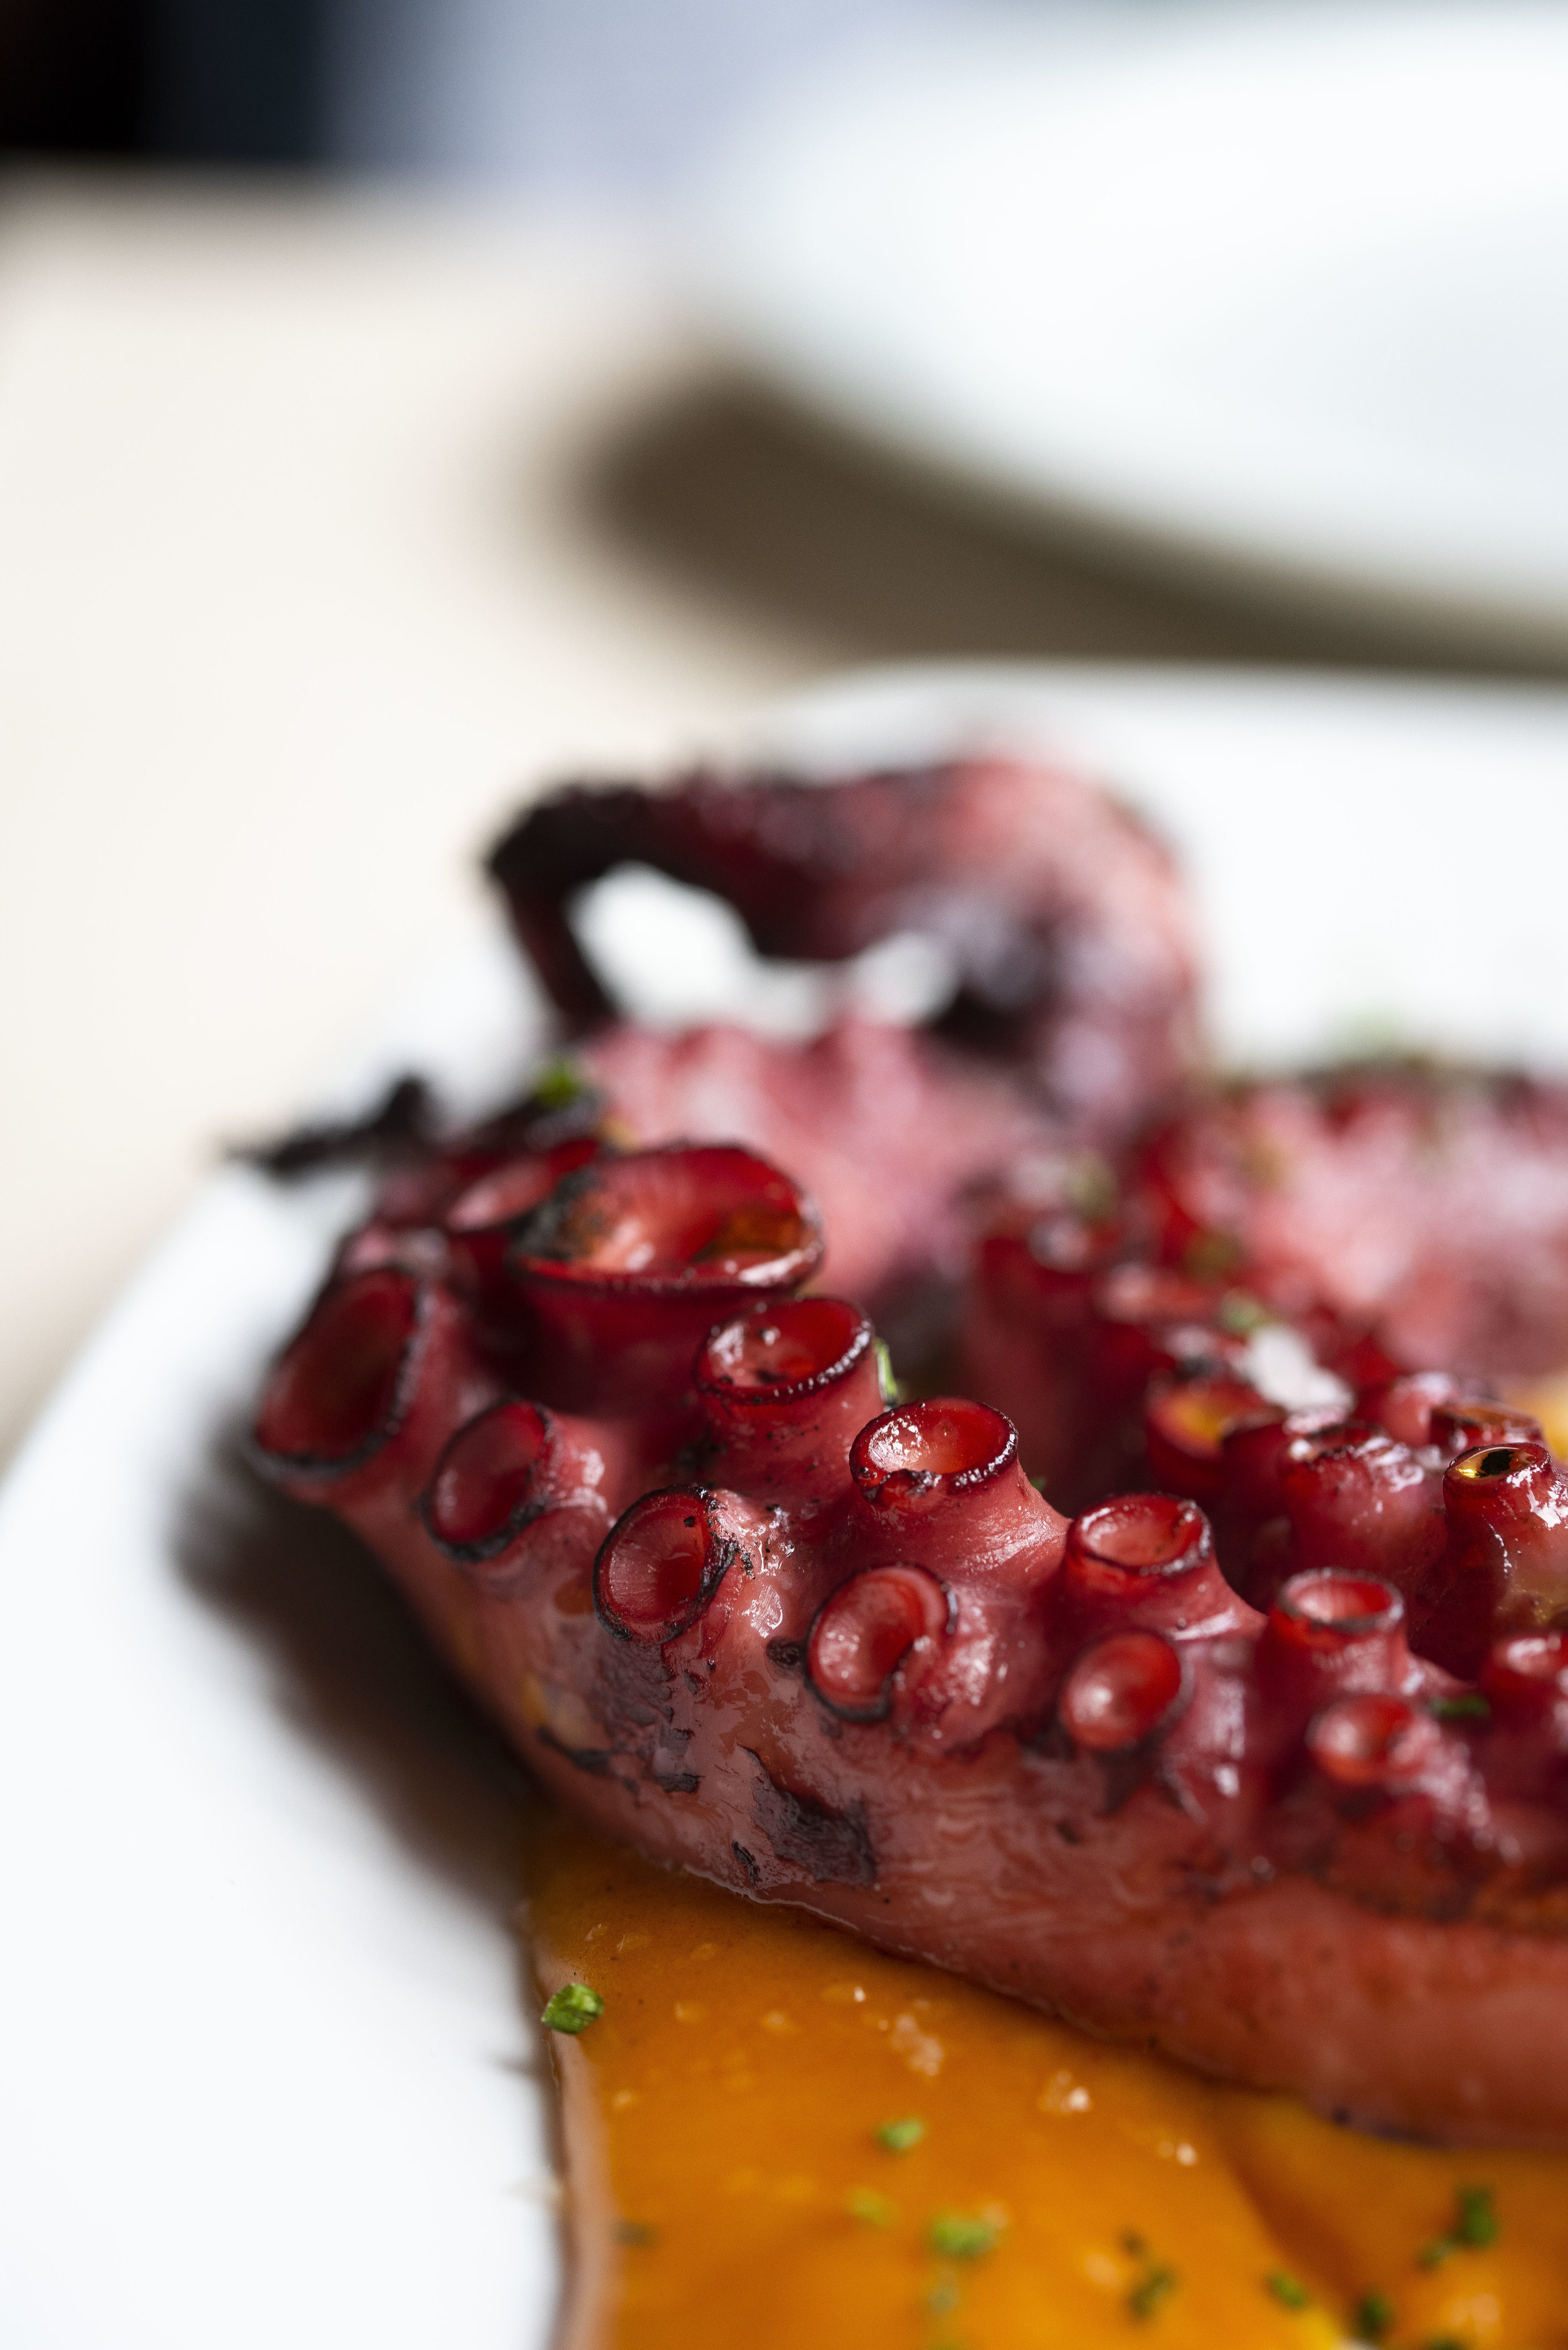 Grilled octopus at Calabrasa, Barcelona. Photo © Barcelona Food Experience.